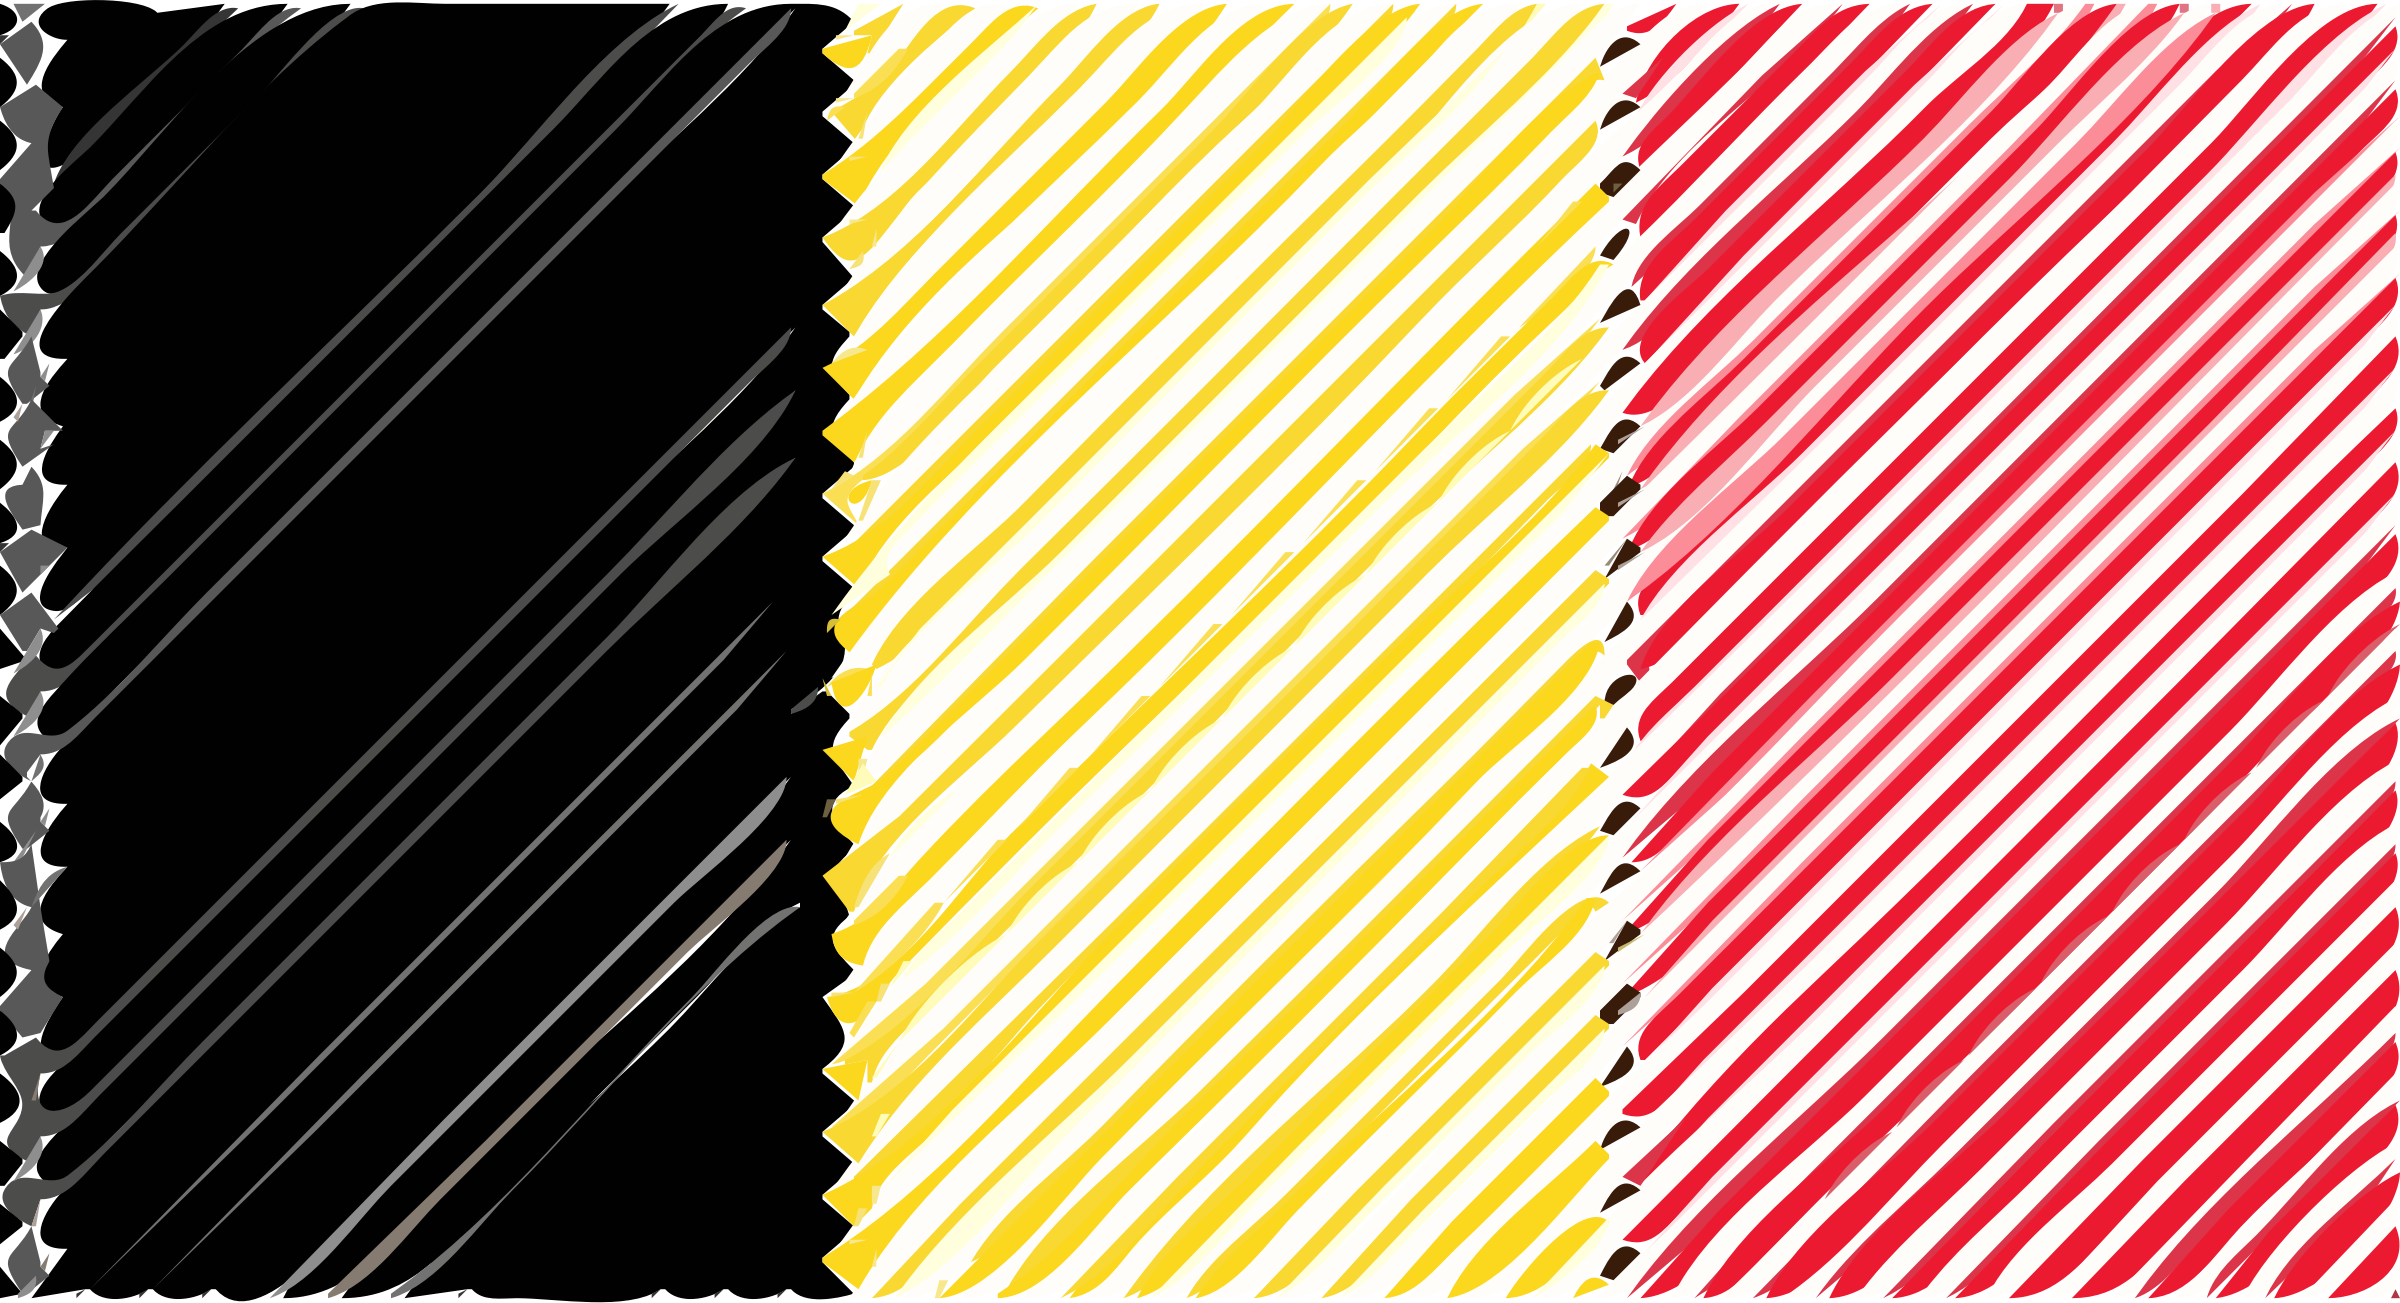 Belguim flag linear by Joesph